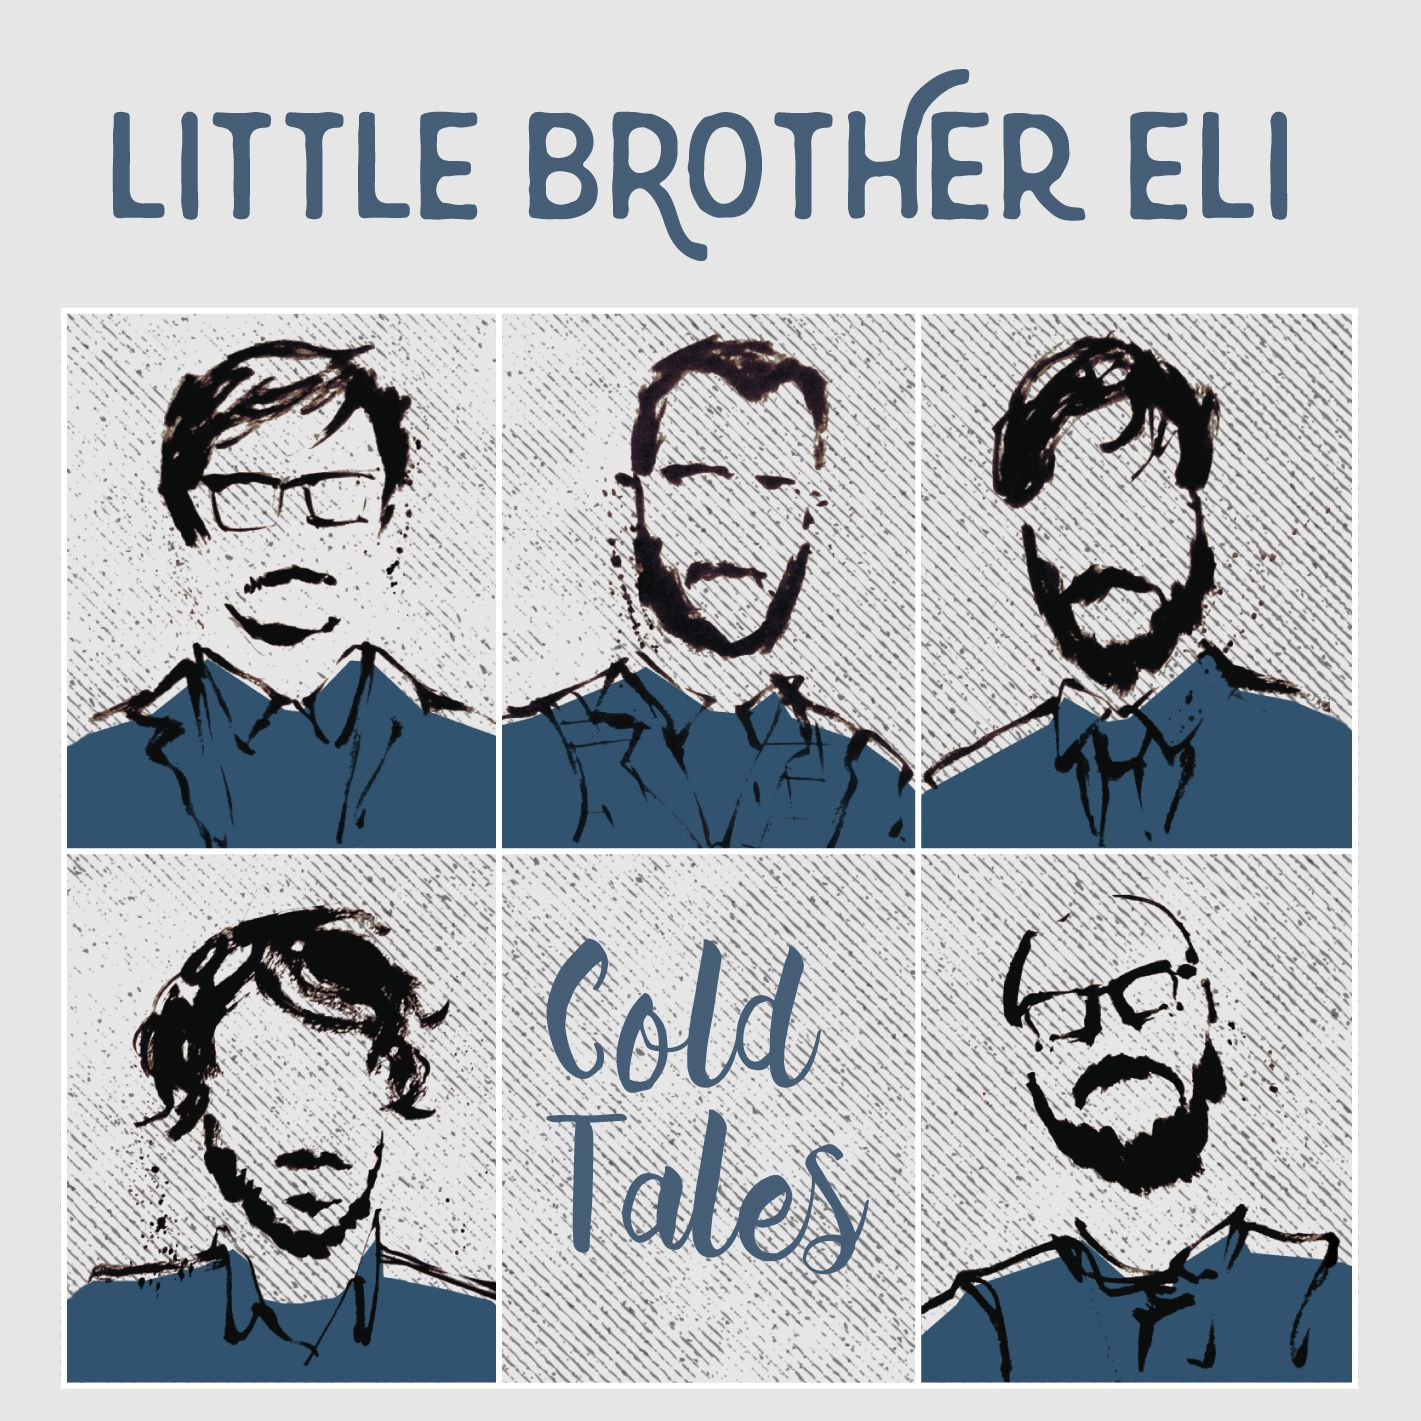 CD review LITTLE BROTHER ELI &quot&#x3B;Cold Tales&quot&#x3B;